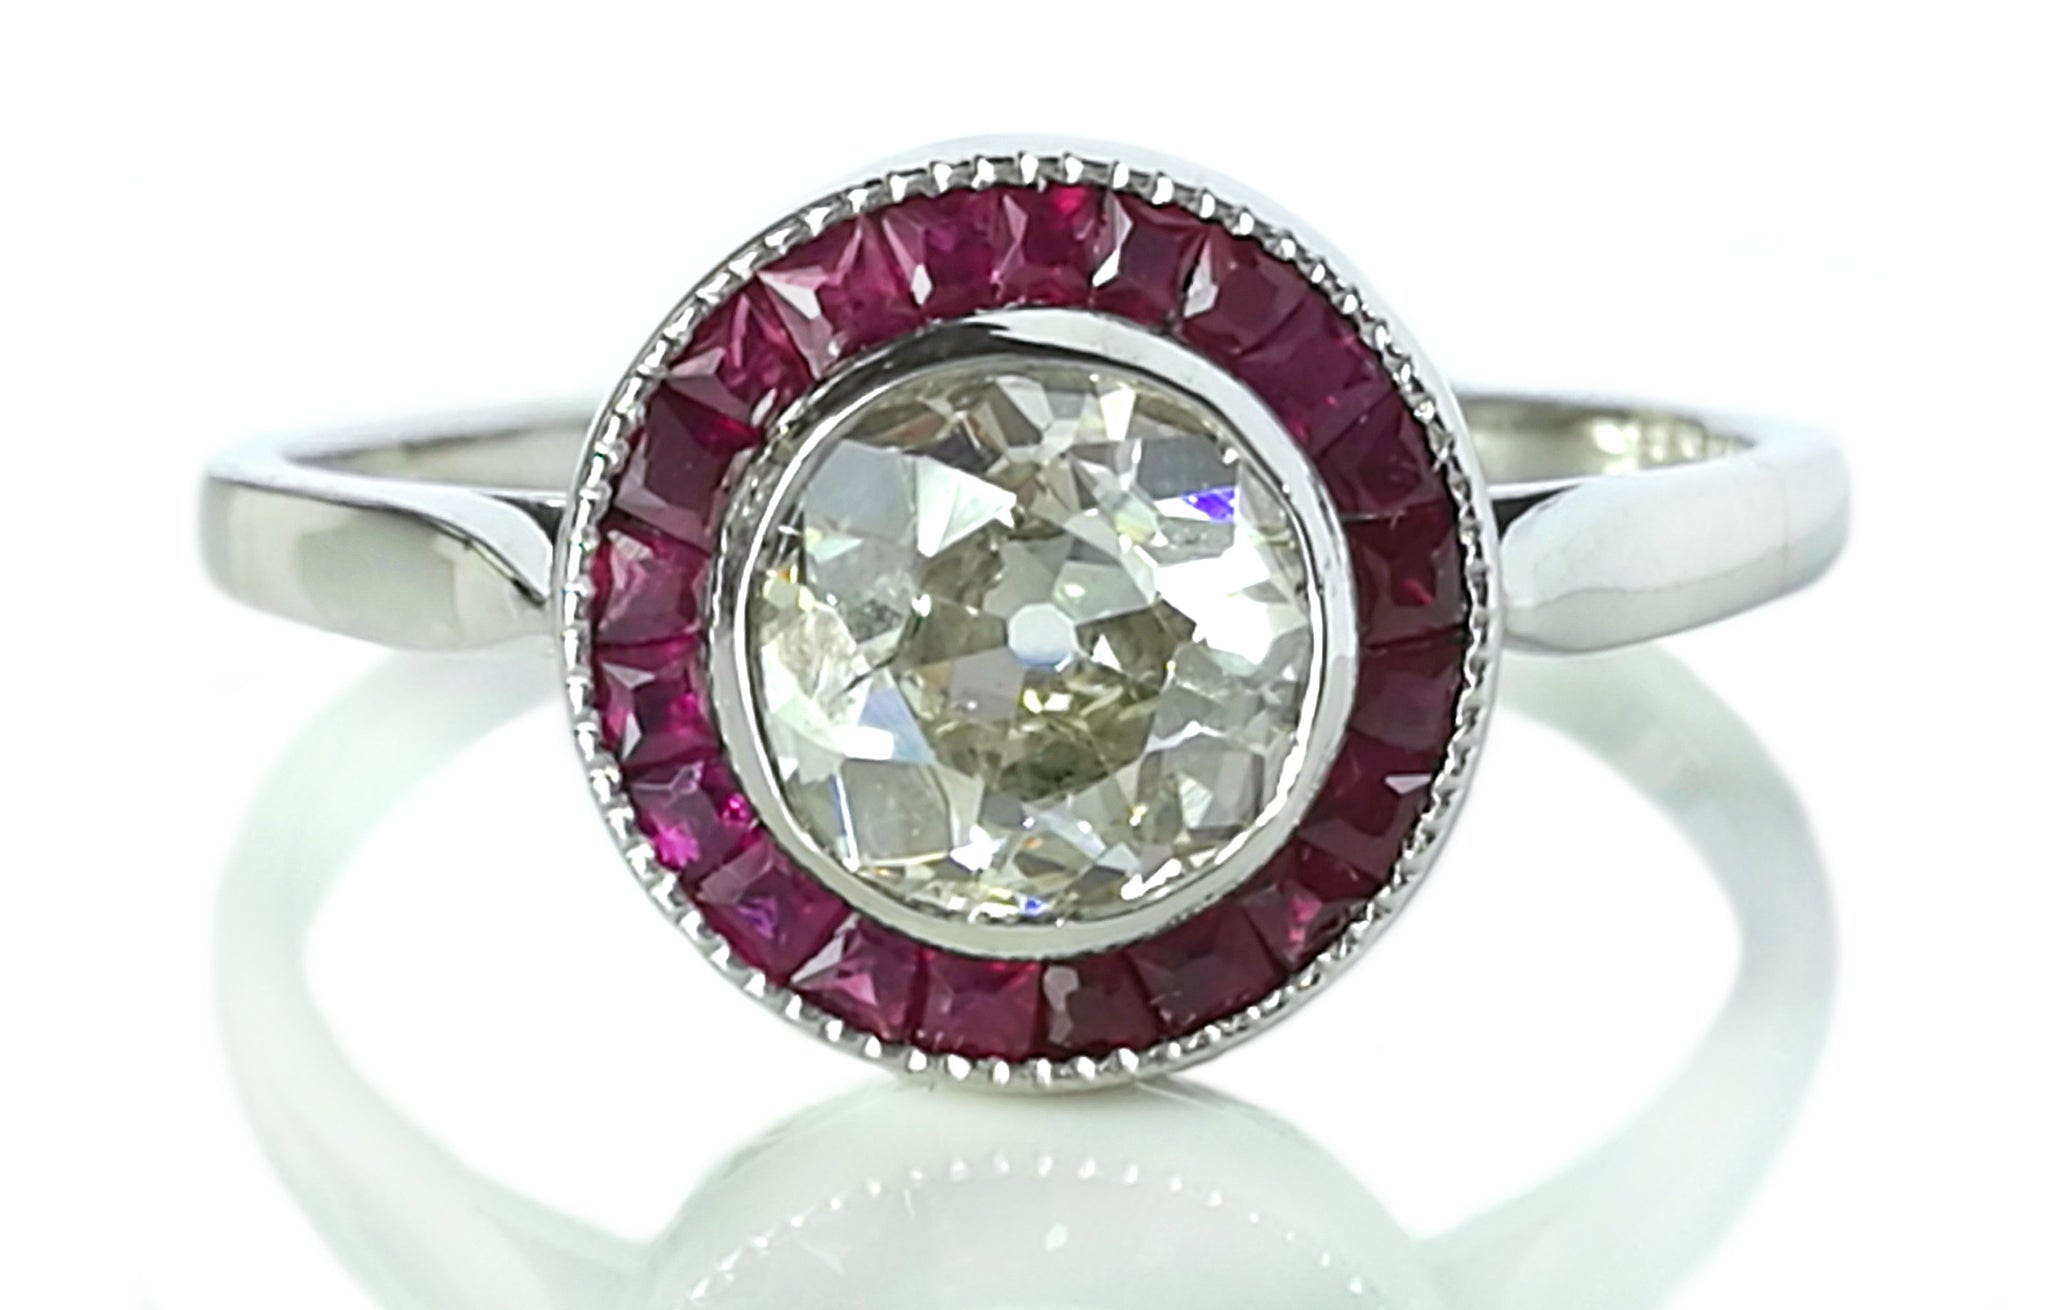 Art Deco 1930s French 1.20ct Diamond & Ruby Halo Target Engagement Ring in Platinum